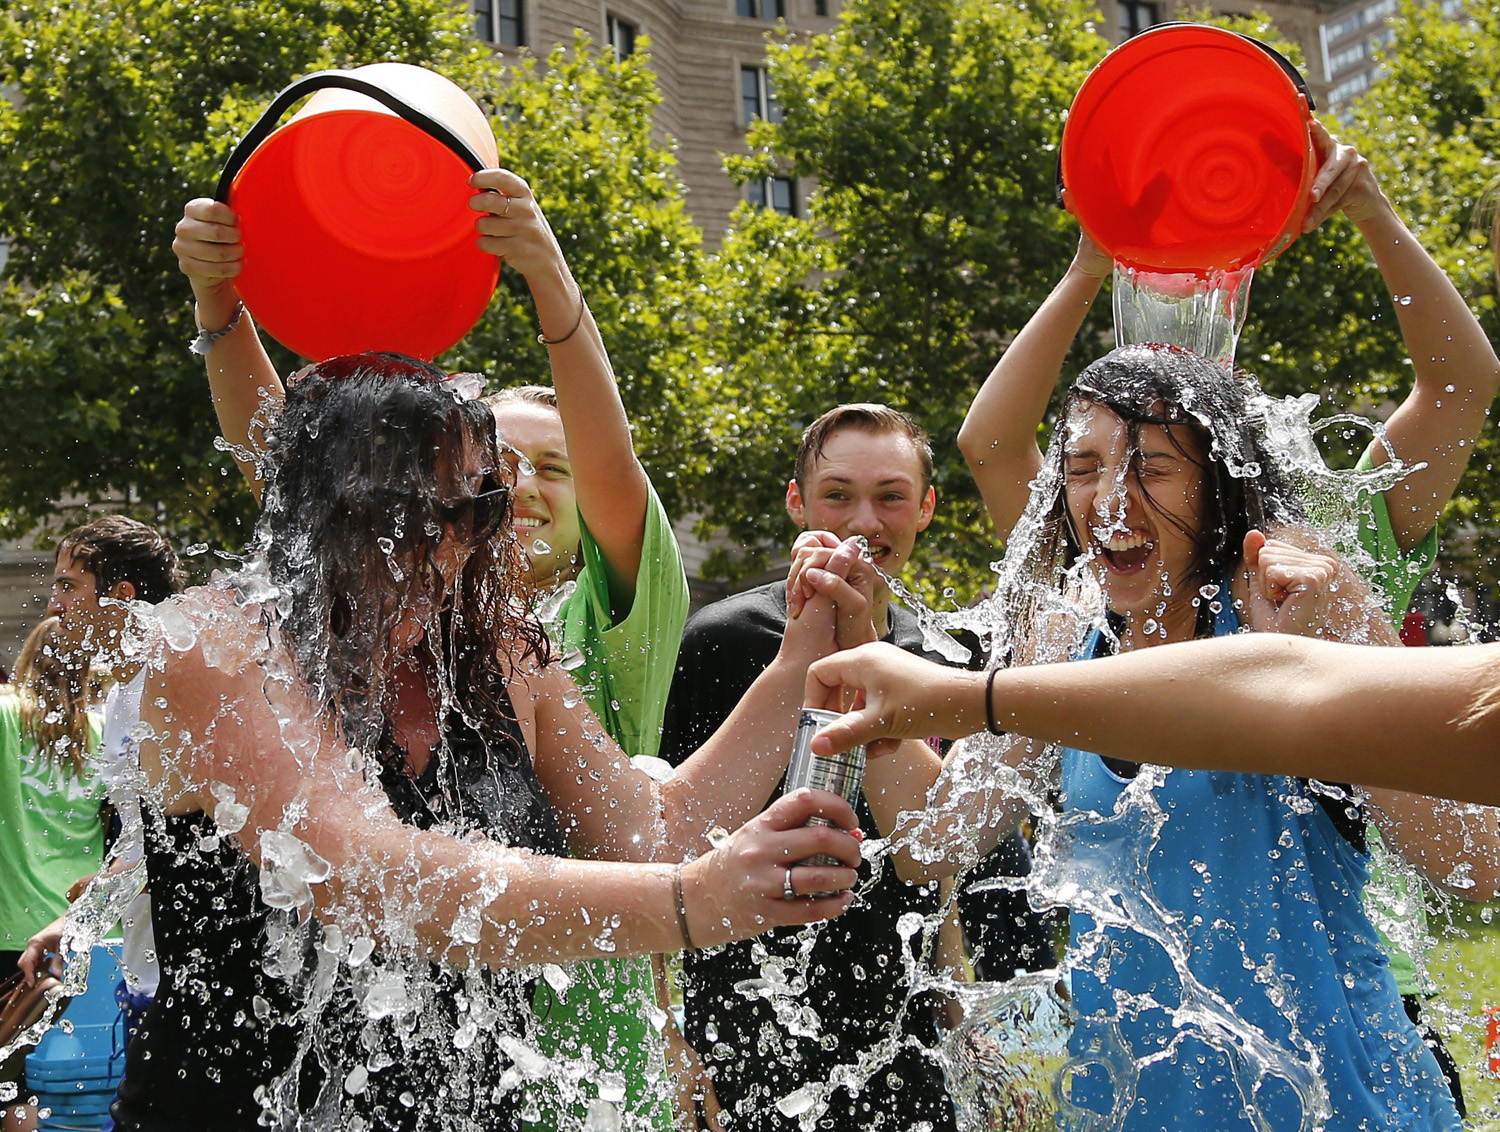 Two women get doused during the ice bucket challenge at Boston's Copley Square on Aug. 7, 2014.